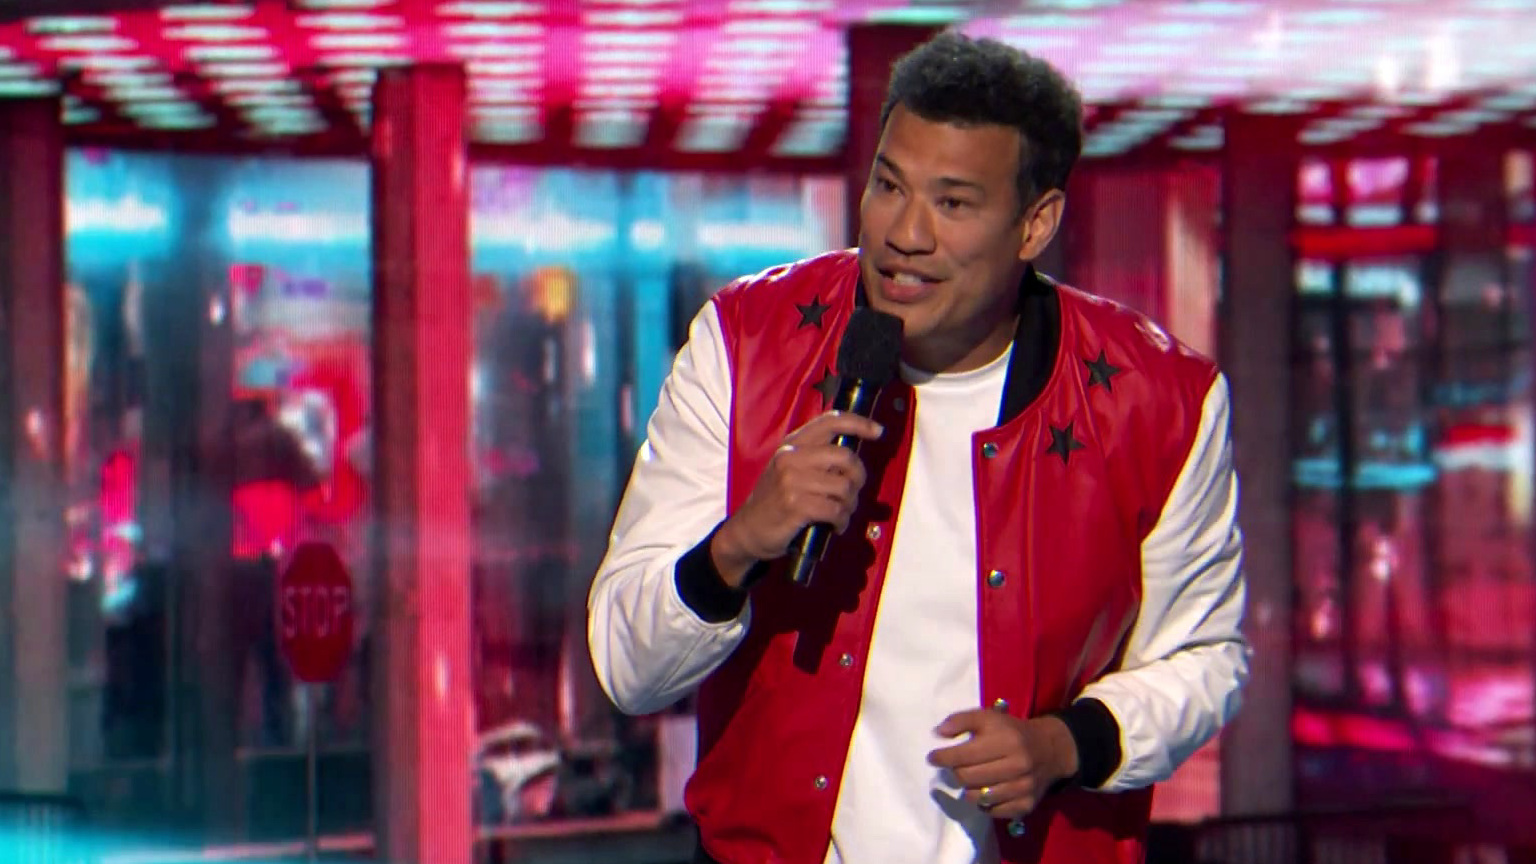 America's Got Talent: Comedian Michael Yo Tells Hilarious Stories About Starting A Family